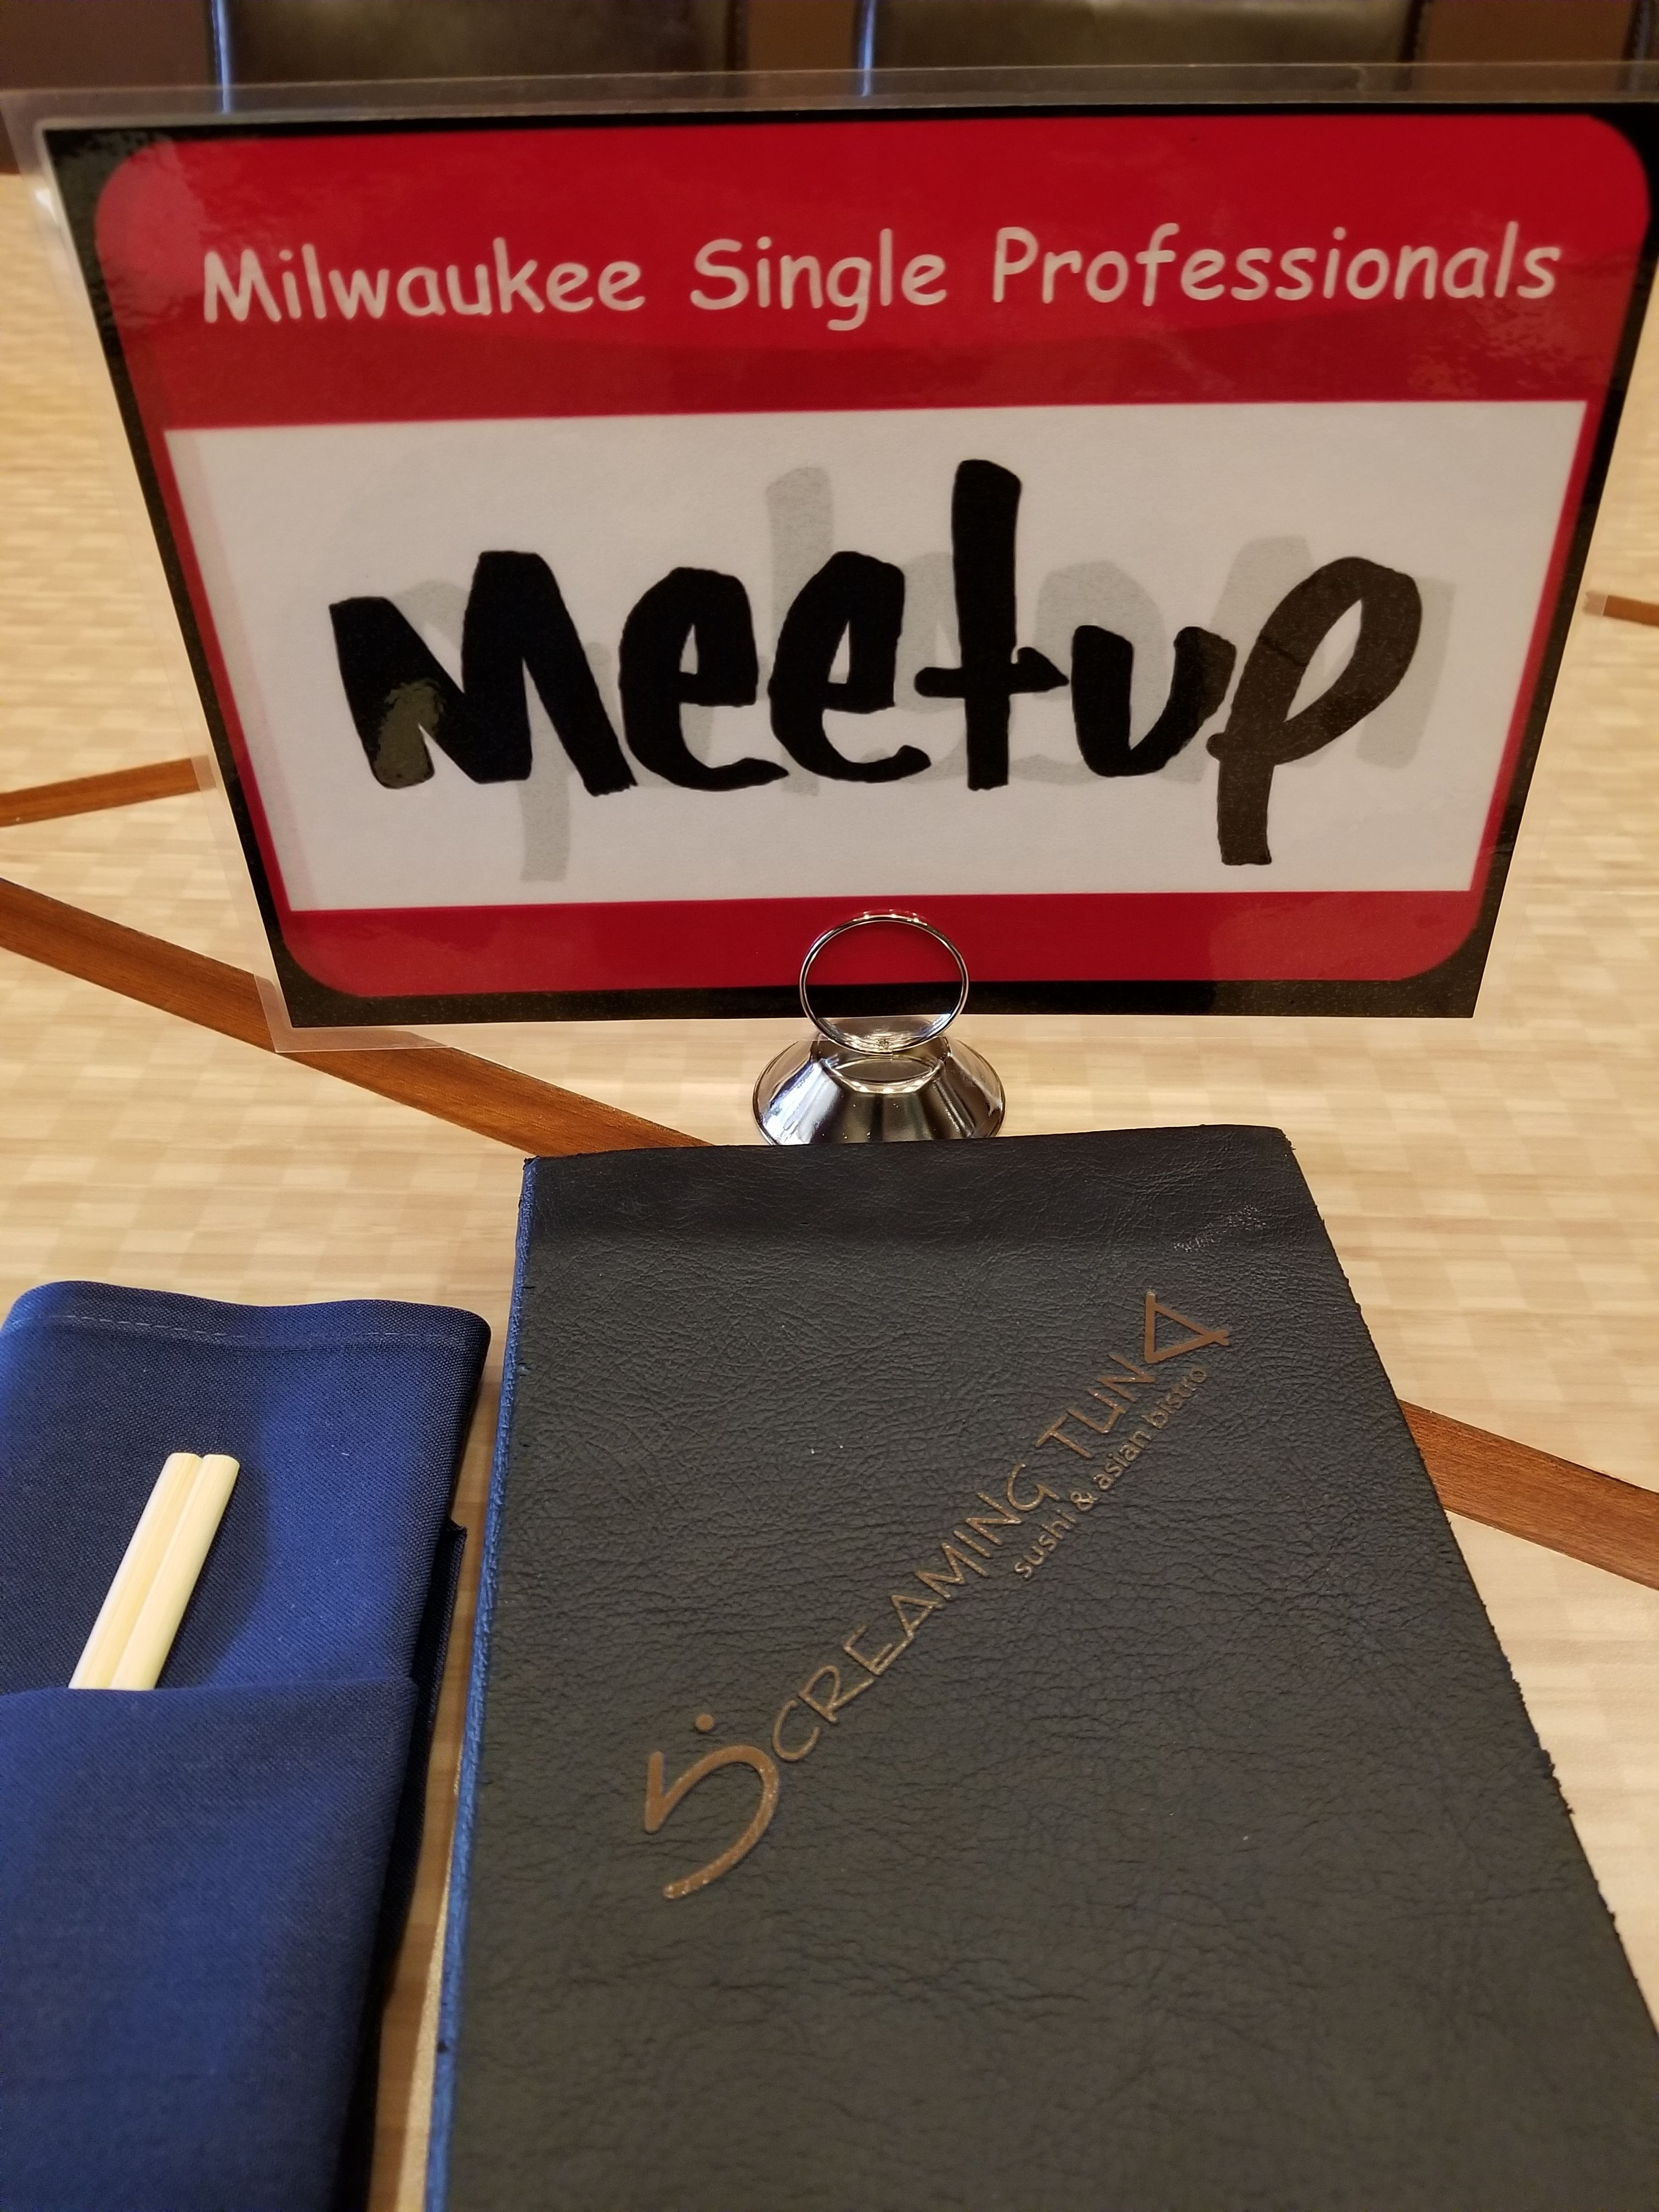 Milwaukee dating